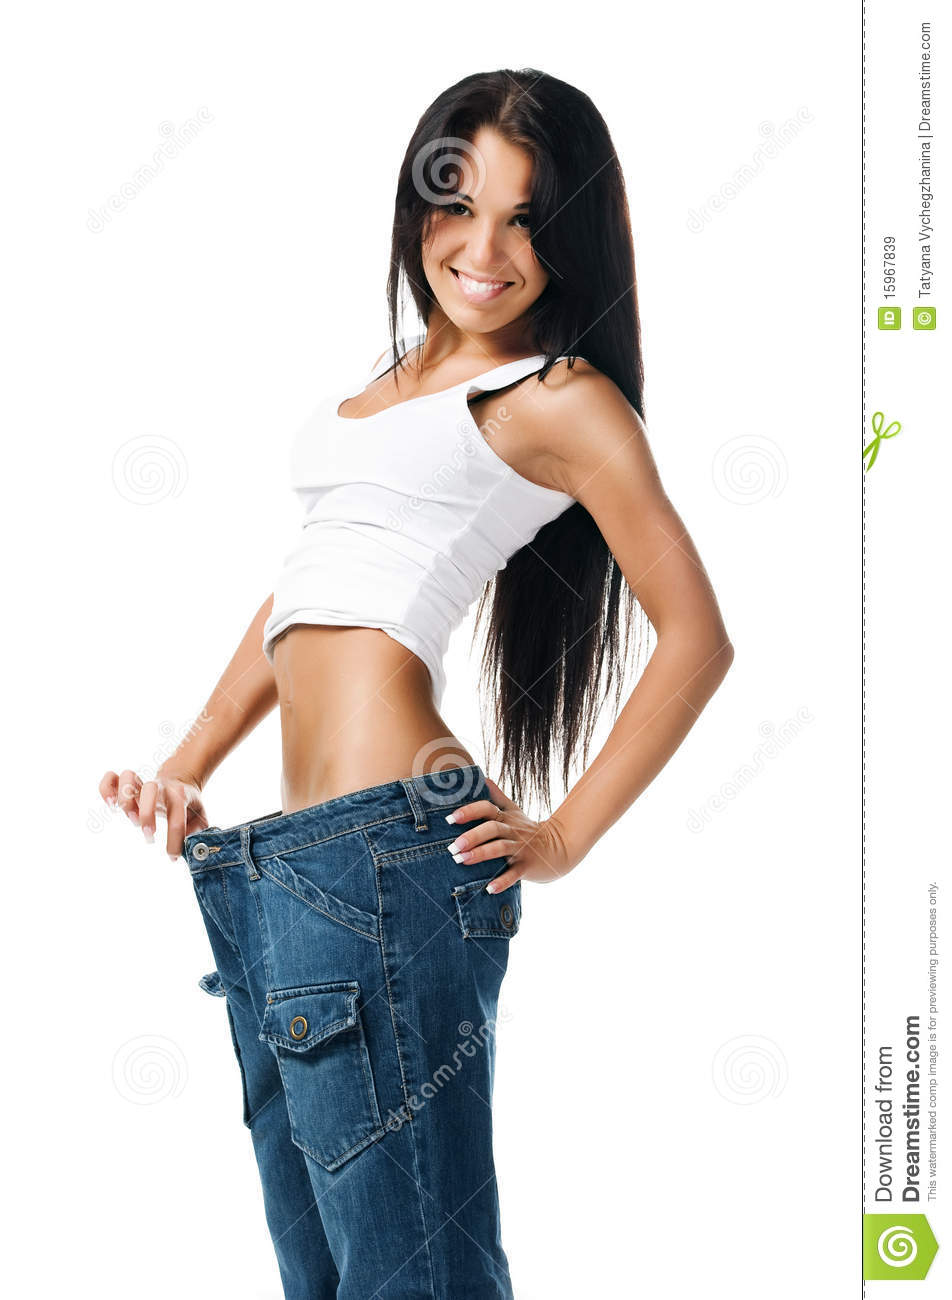 Regret, that Weight loss pictures of young girls congratulate